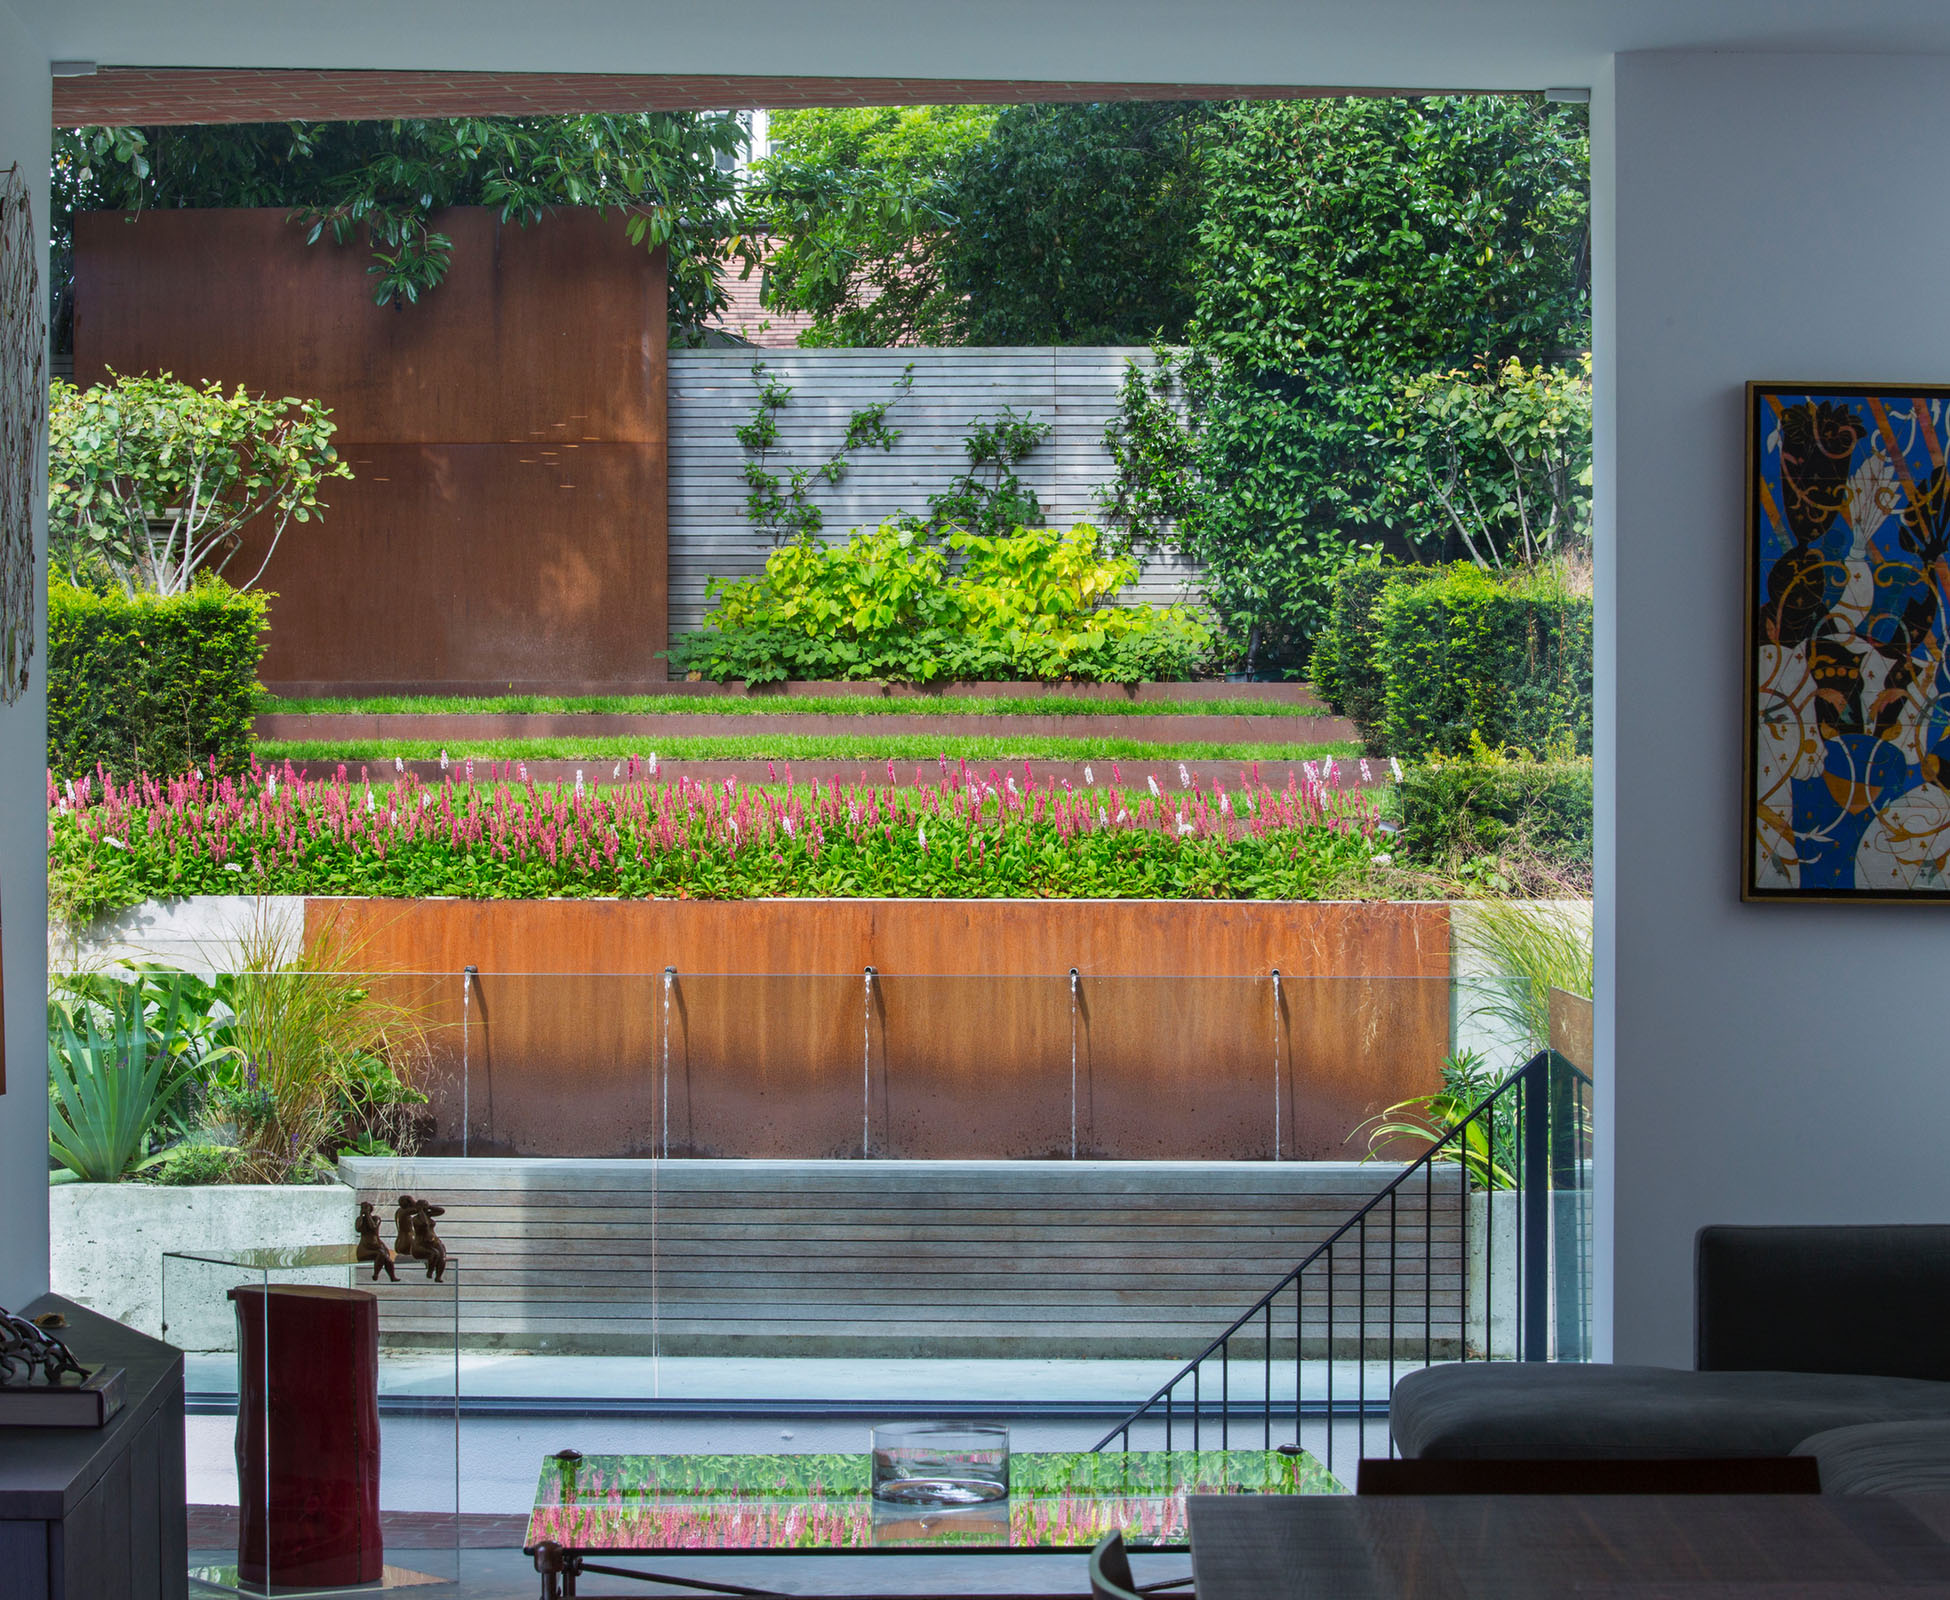 The dramatic window out from the kitchen offers a theatrical view onto the garden.